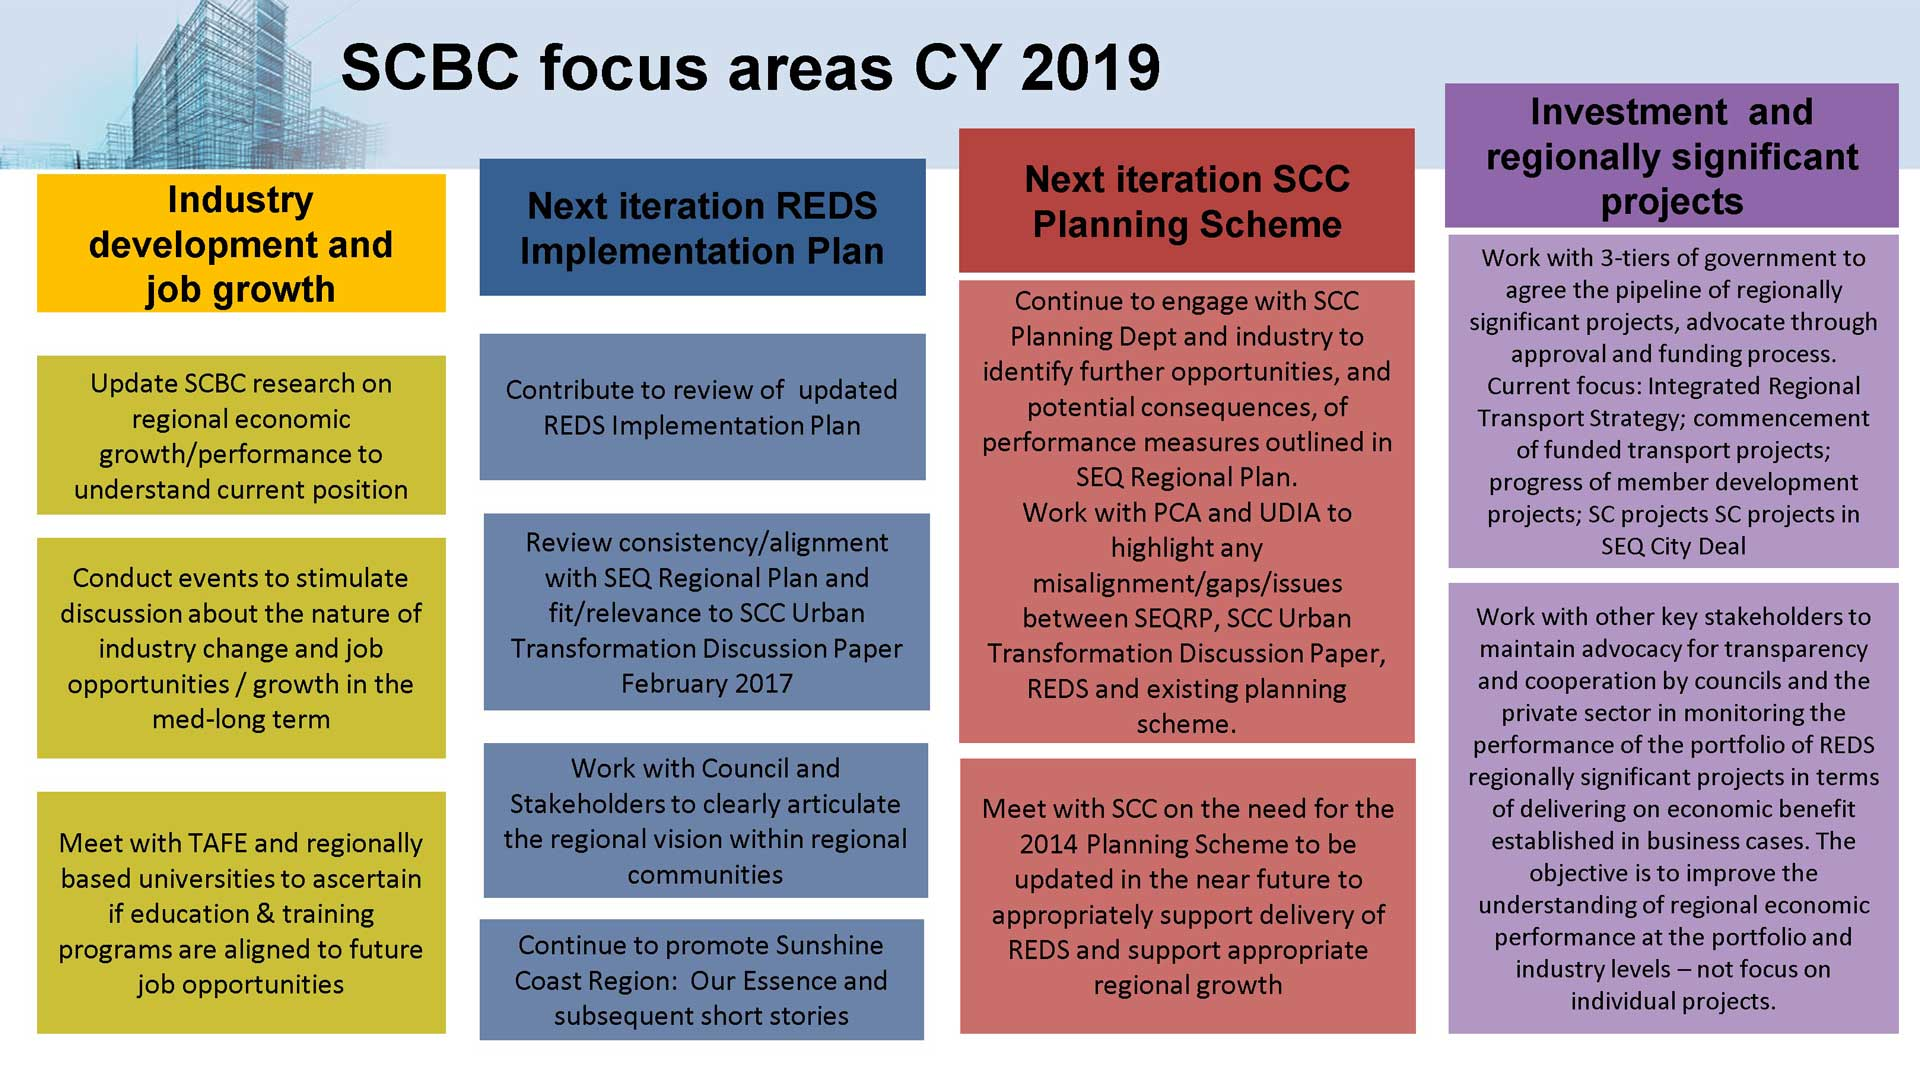 SCBC-Priority-Focus-Areas-CY-2019